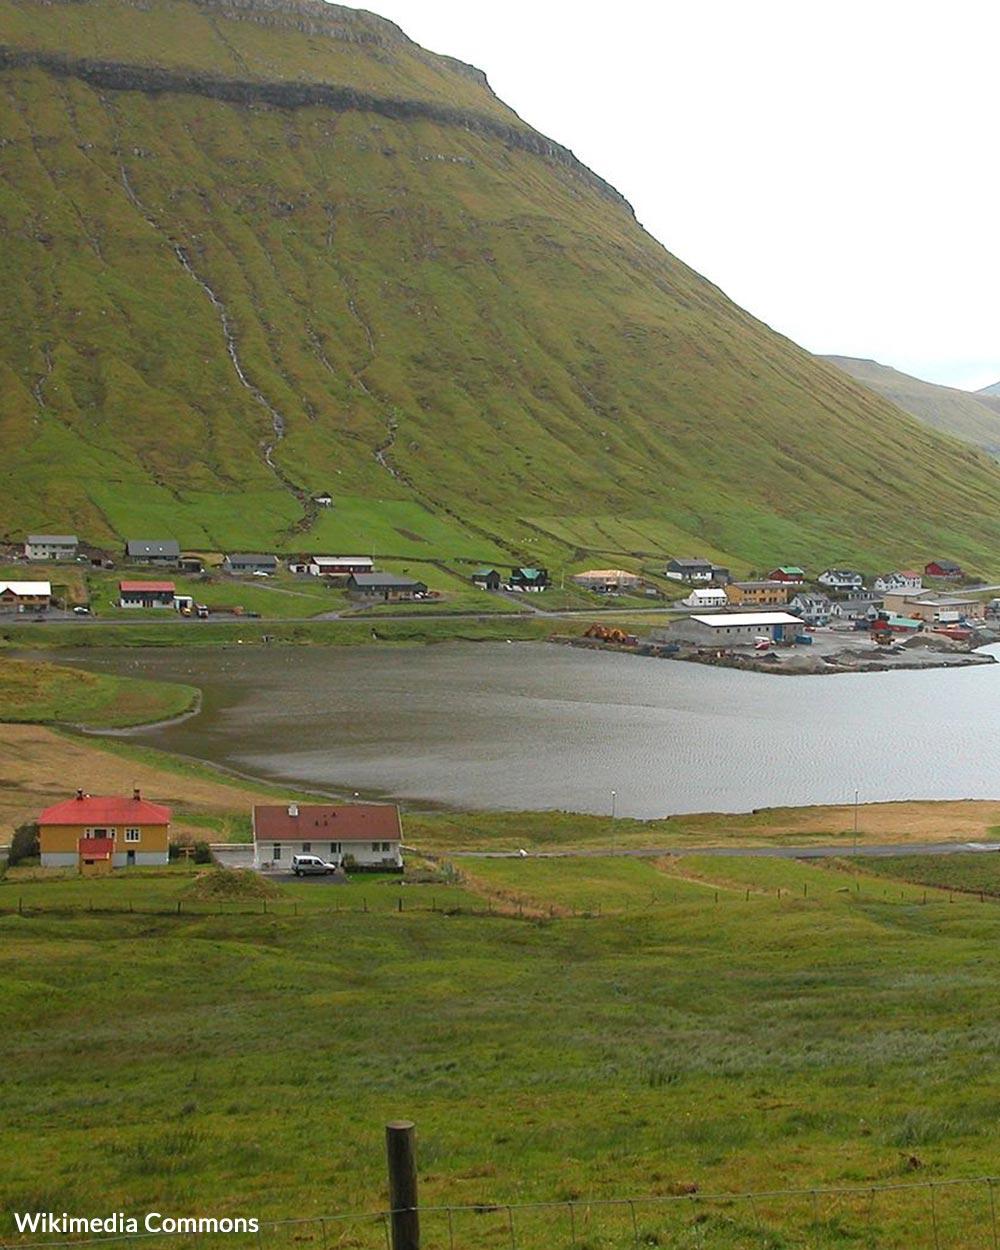 The Faroese rely on fishing and whaling for food.